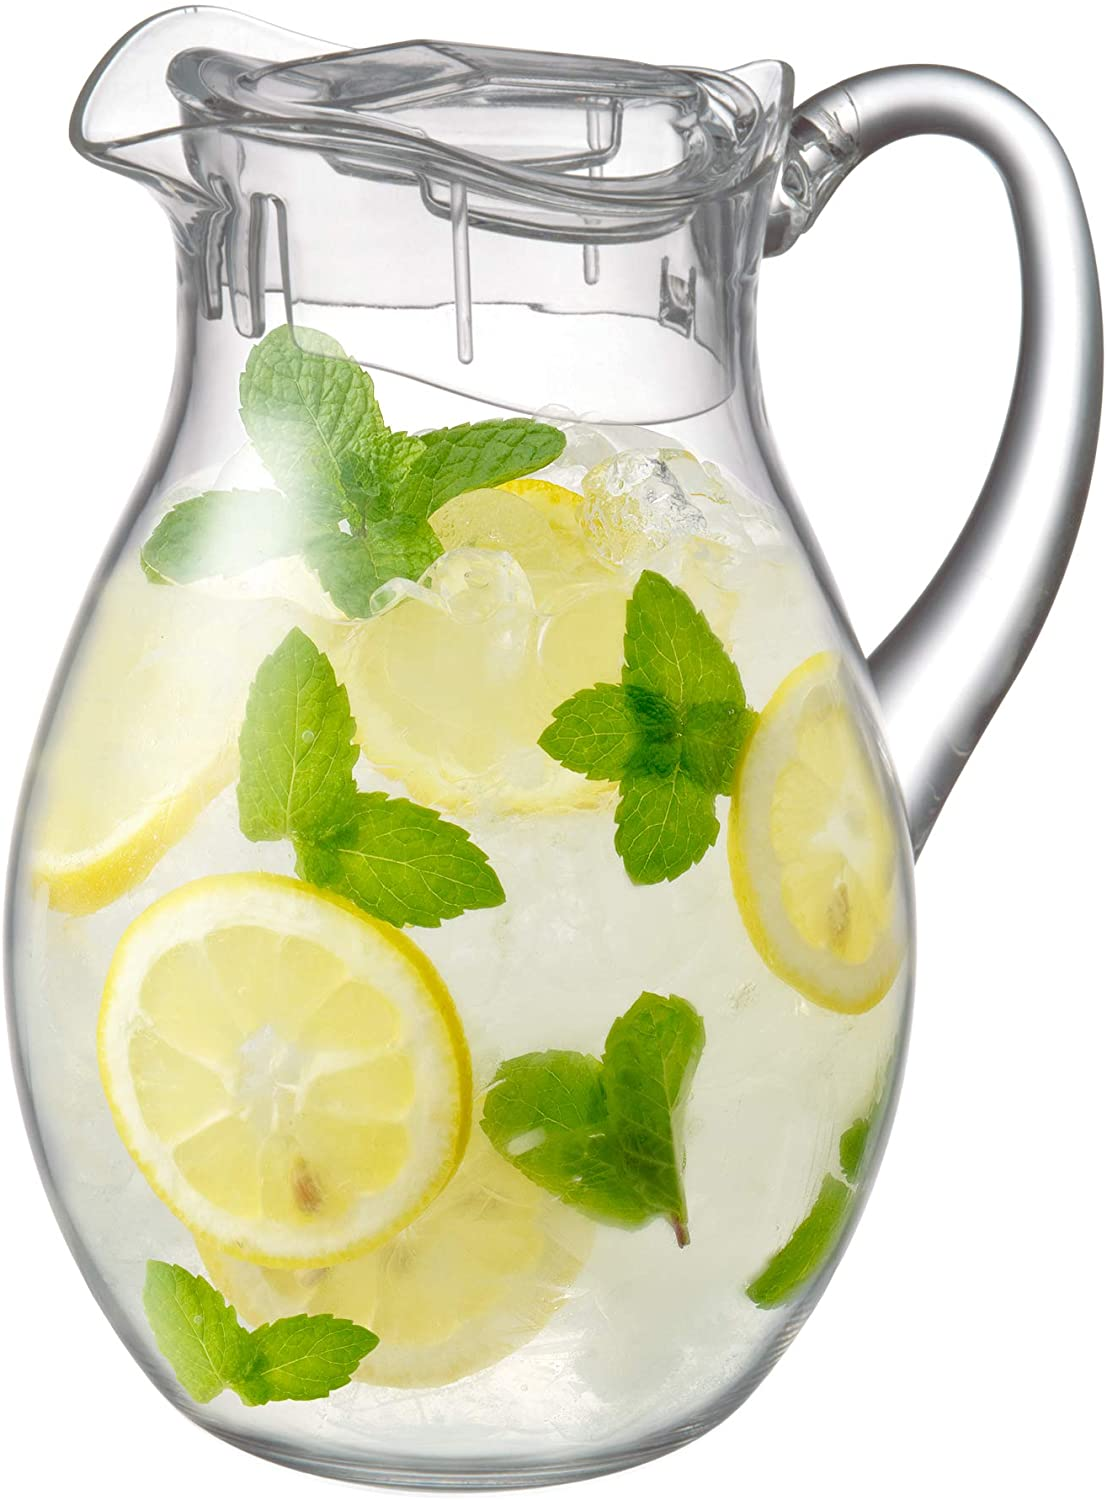 Amazing Abby Bubbly - Acrylic Pitcher (72 oz, 2 qt), BPA-Free and Shatter-Proof, Great for Iced Tea, Sangria, Lemonade, and More